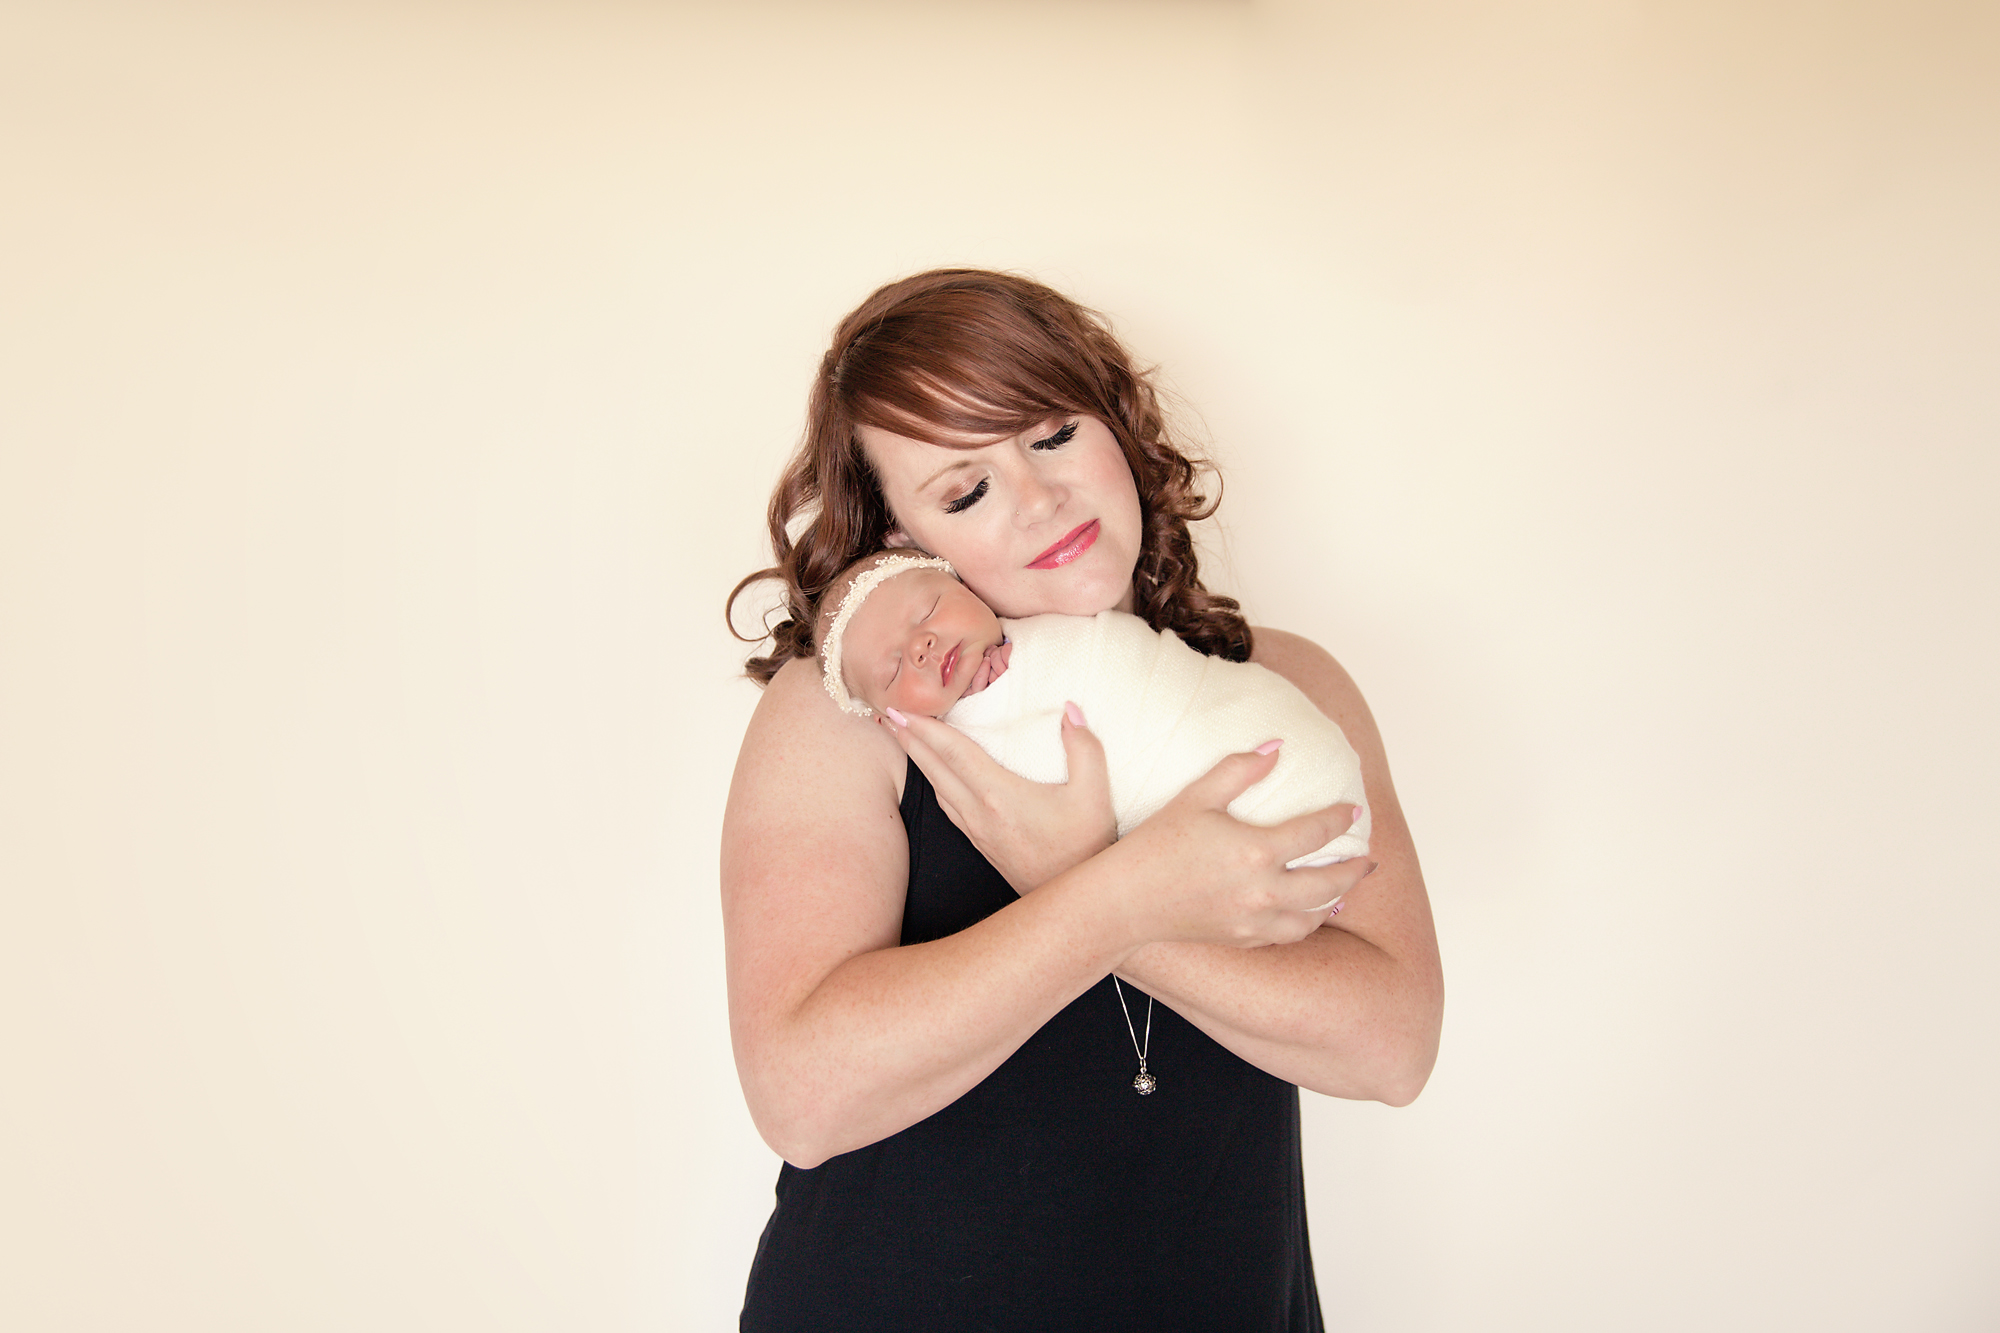 Newborn Photoshoot inspiration ideas. Calgary and Airdrie, Alberta Newborn and Baby photographer - Milashka Photography. Mother and newborn baby daughter shot.